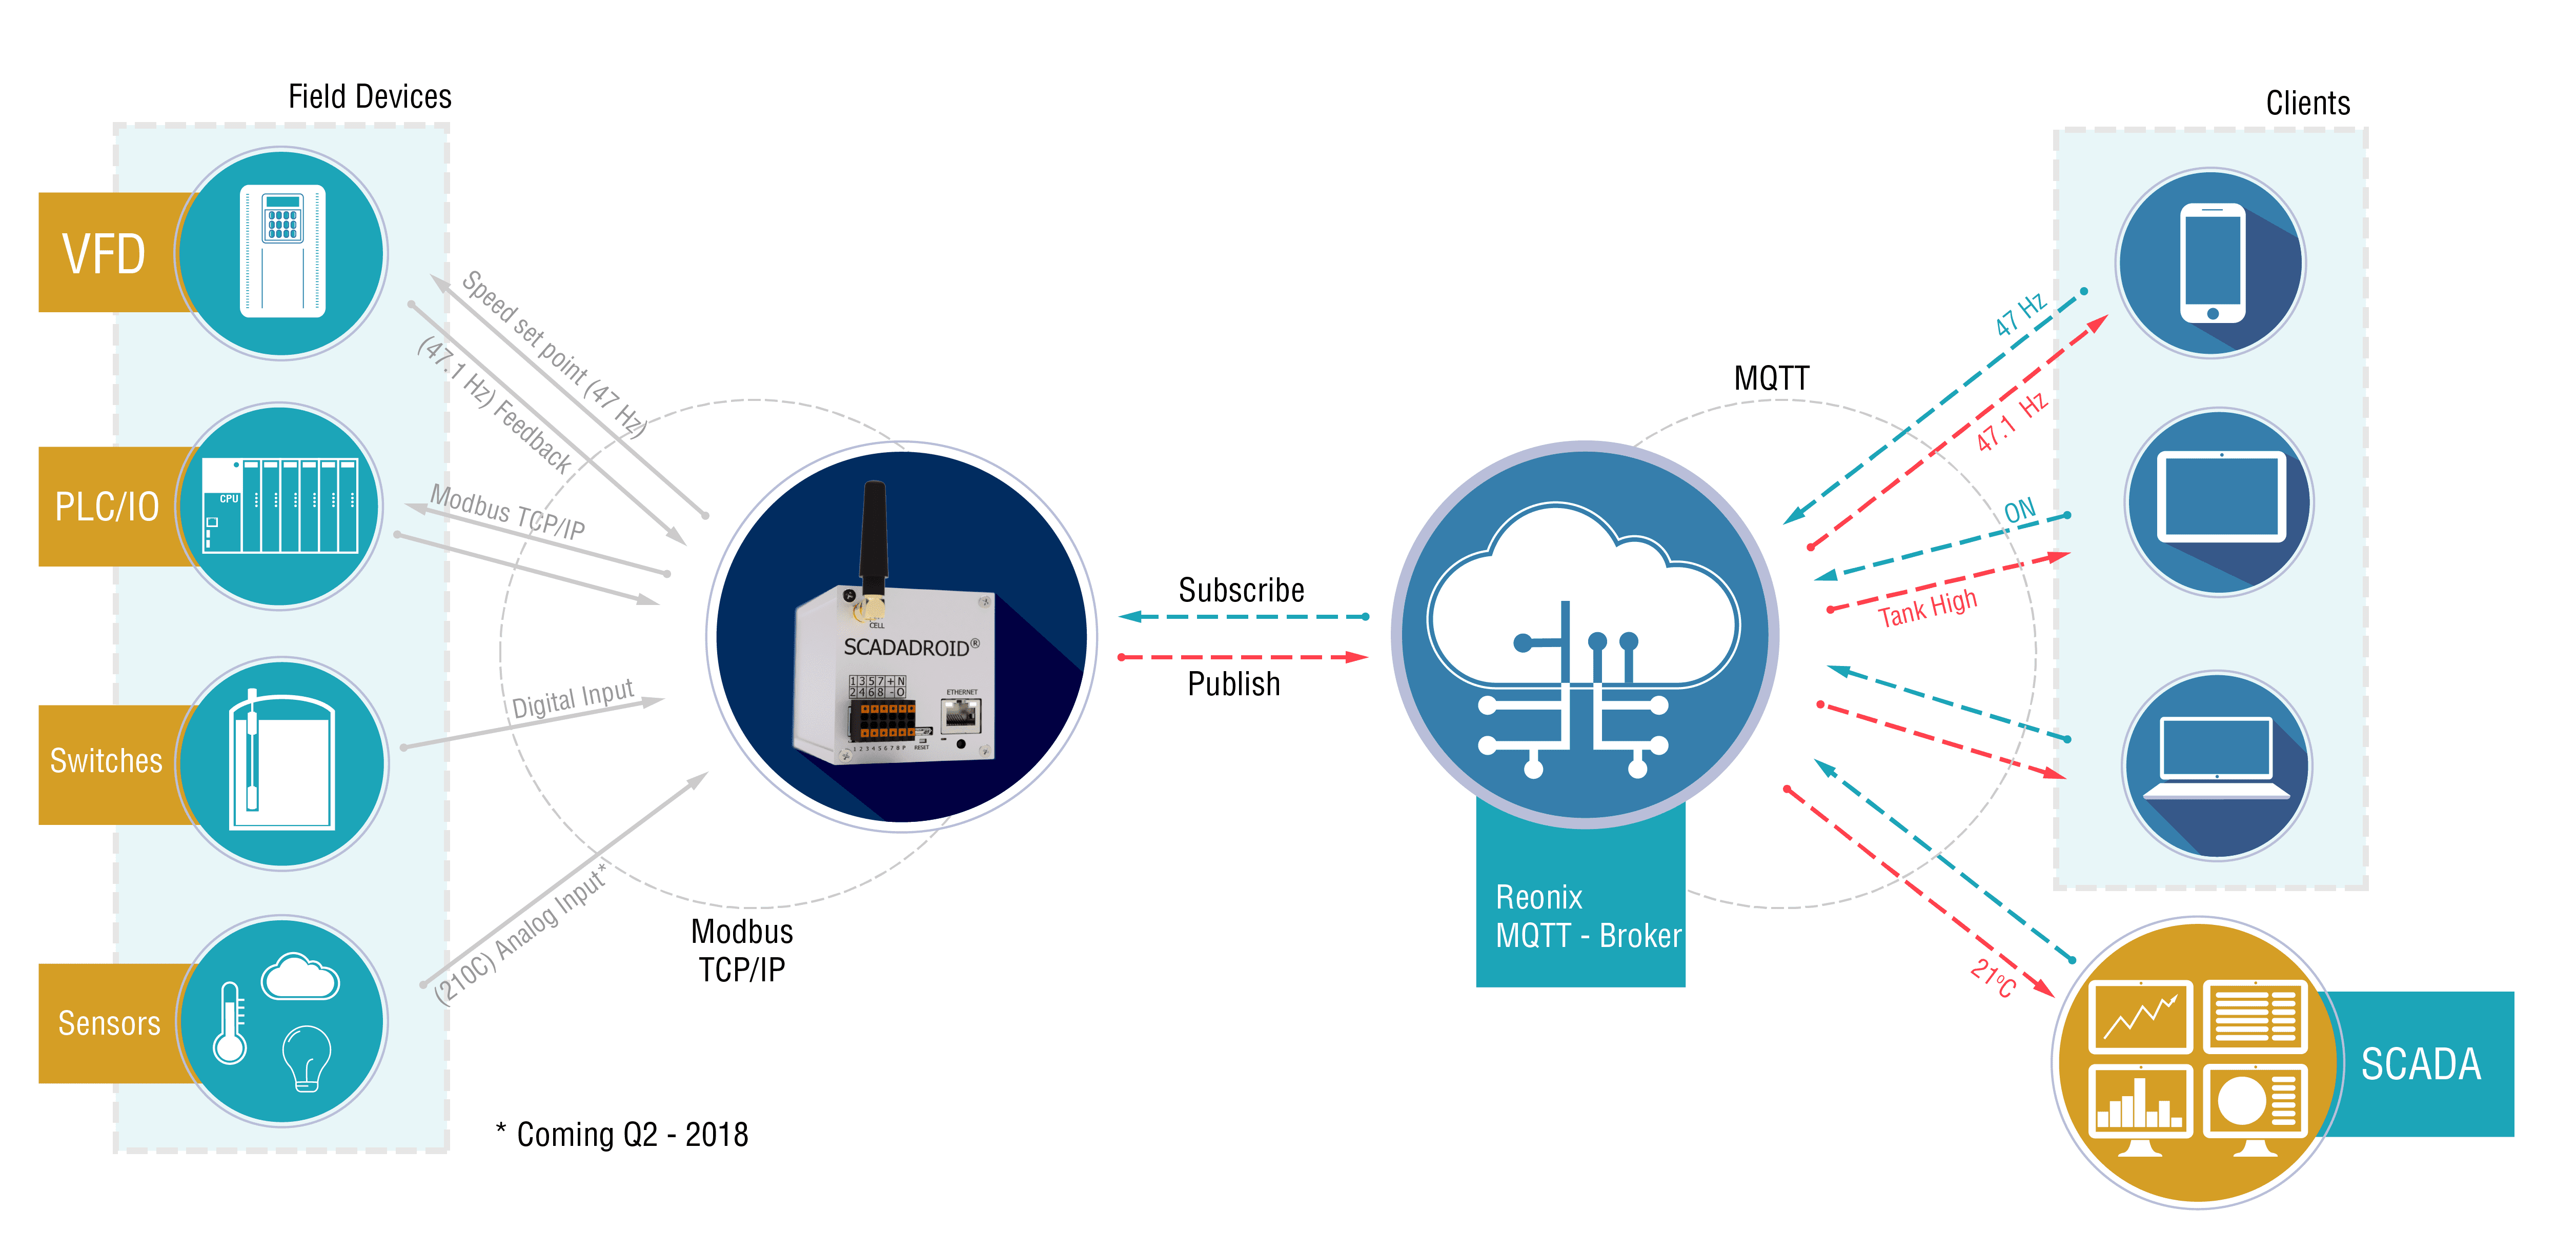 SCADADroid® MQTT IoT Cloud-based Remote Monitoring Data